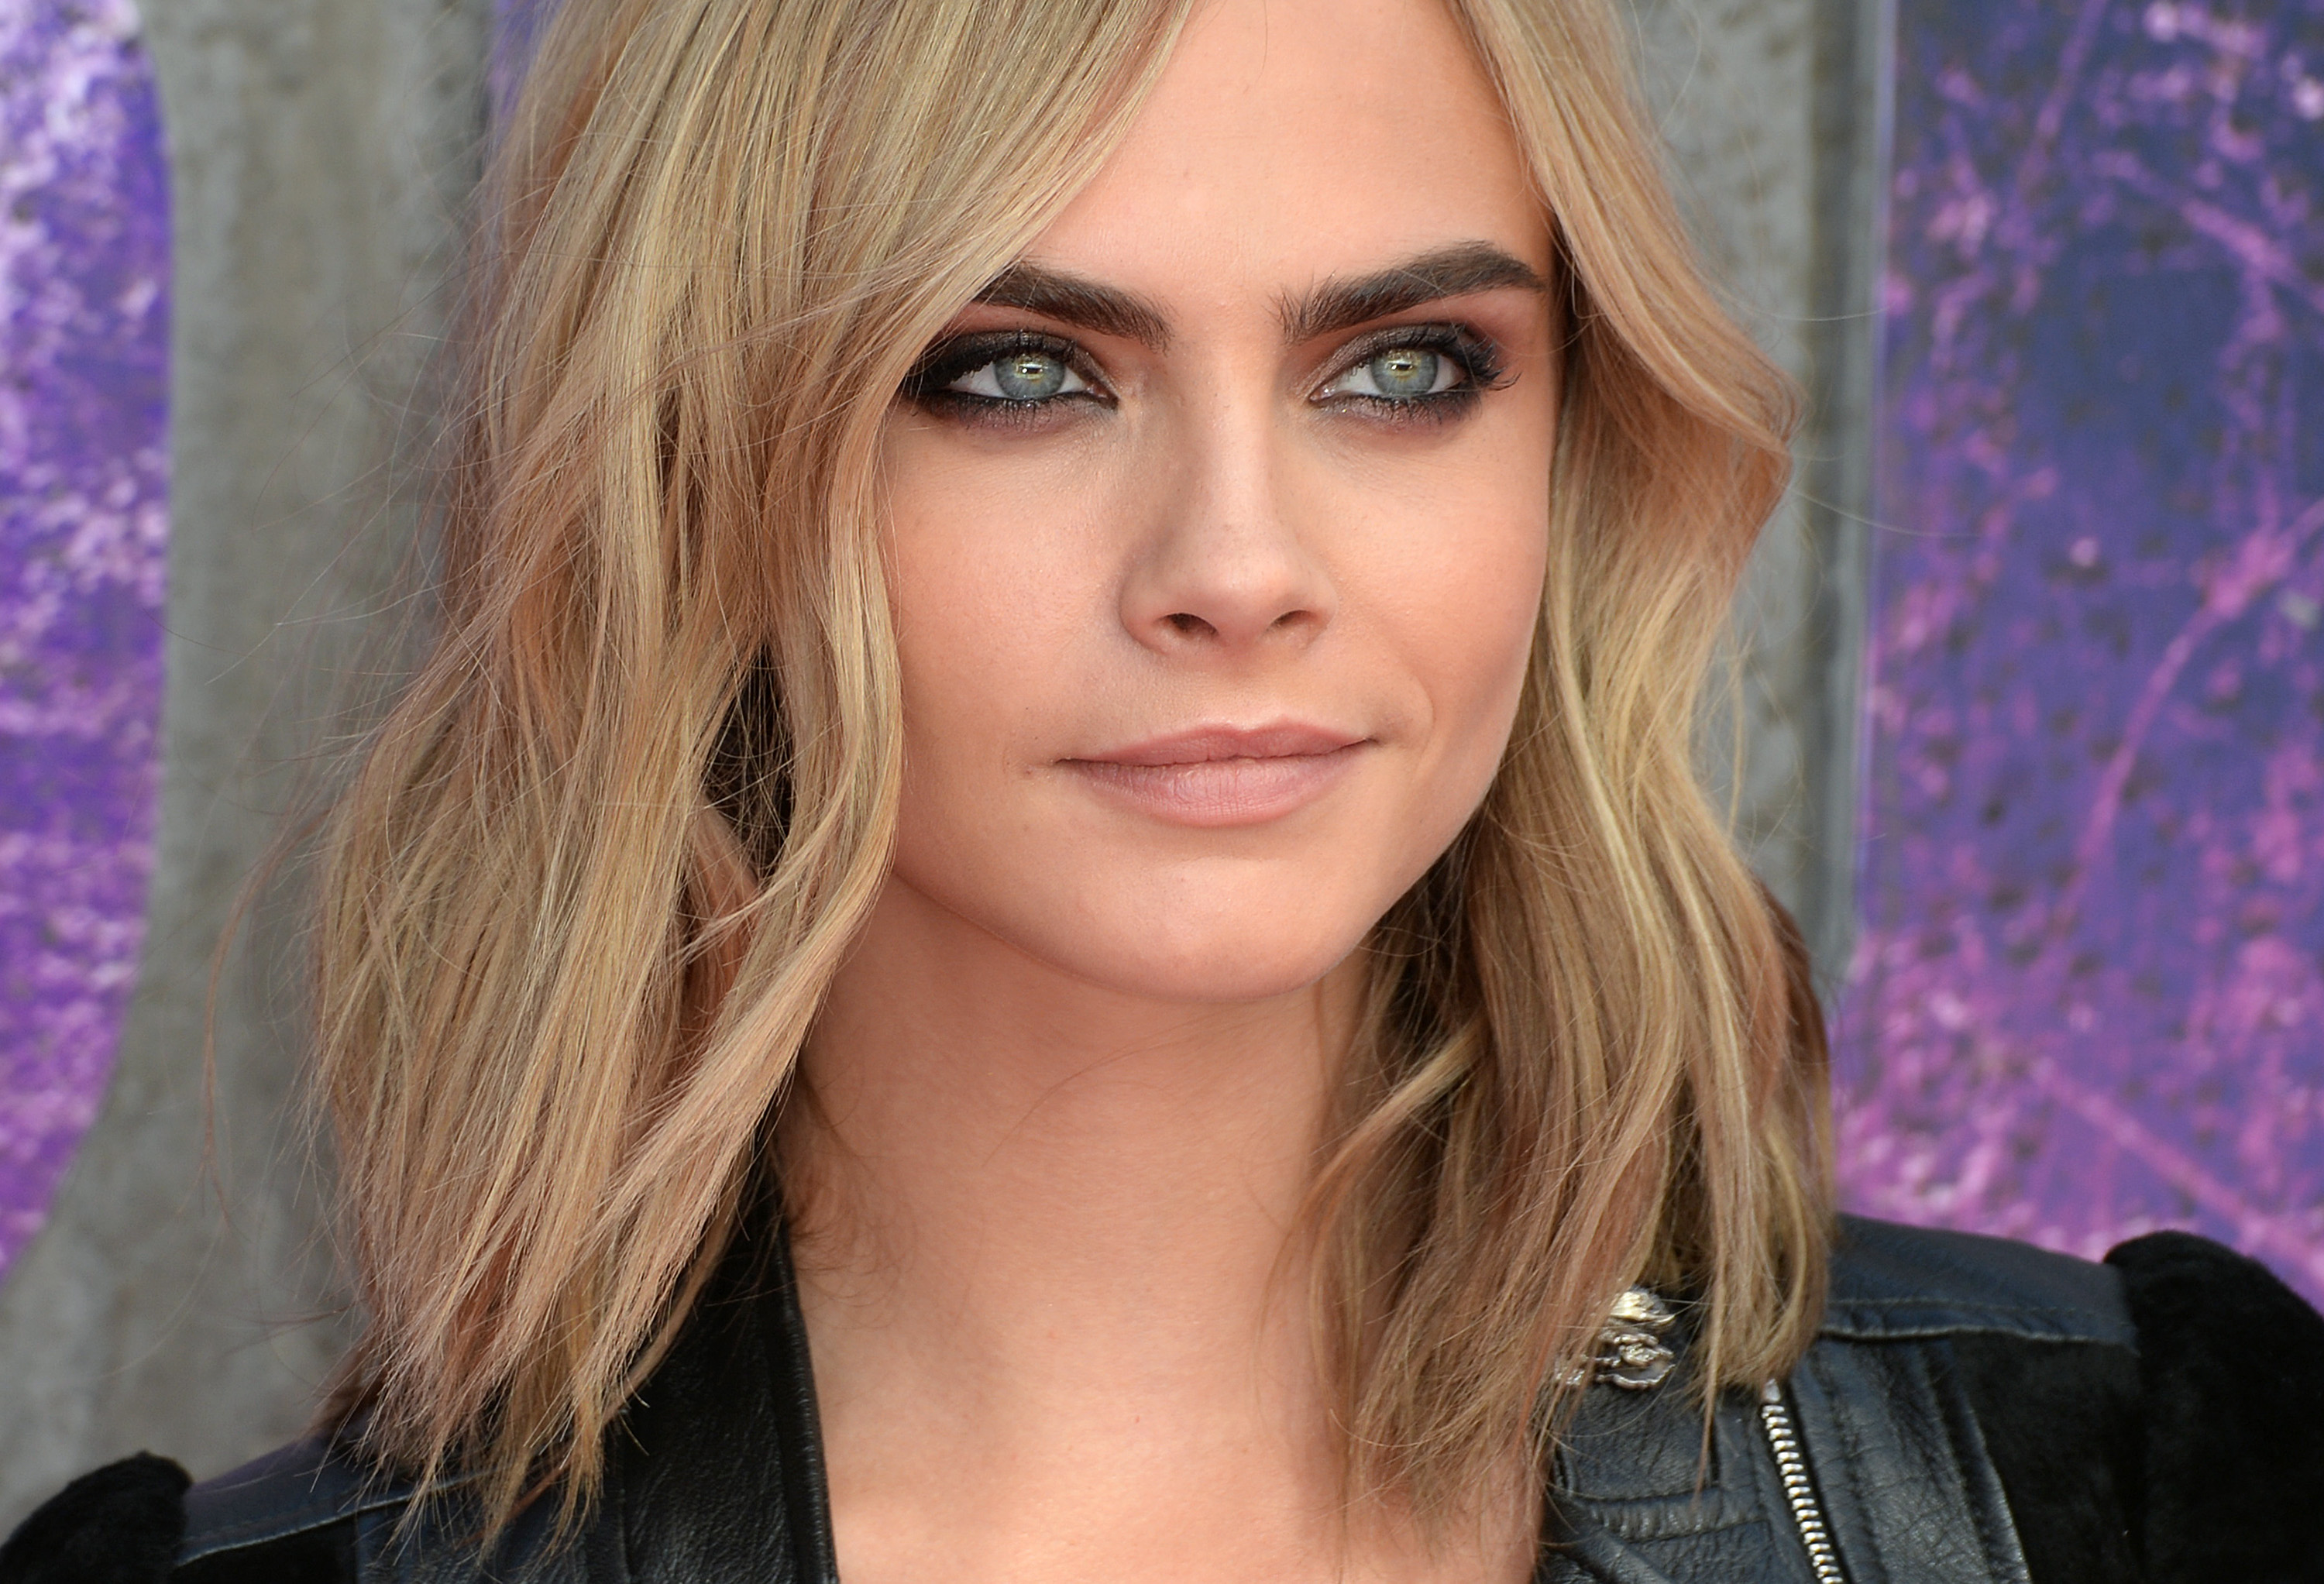 Cara Delevingne reveals she got naked in a forest to